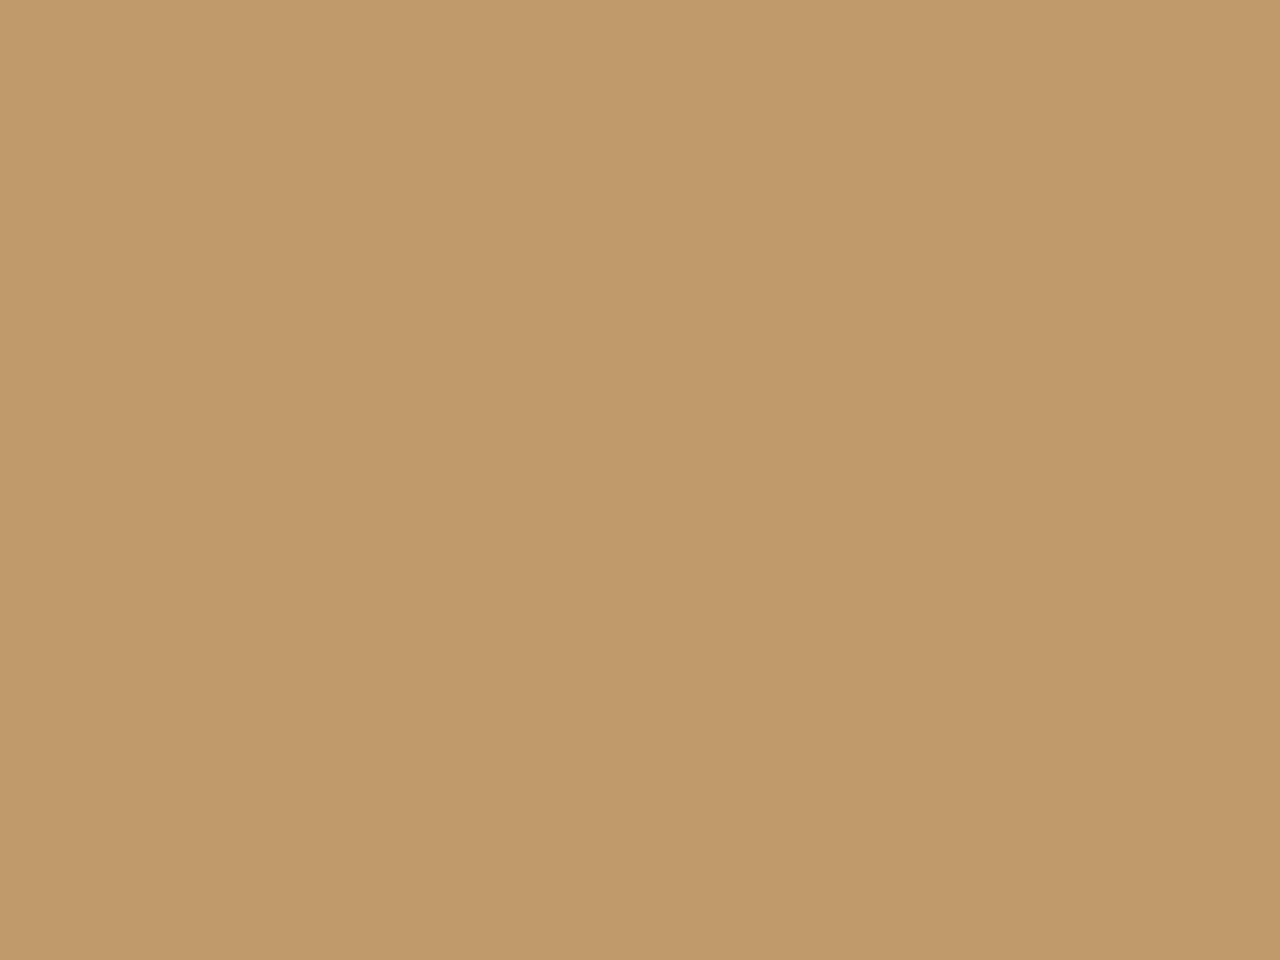 1280x960 Desert Solid Color Background